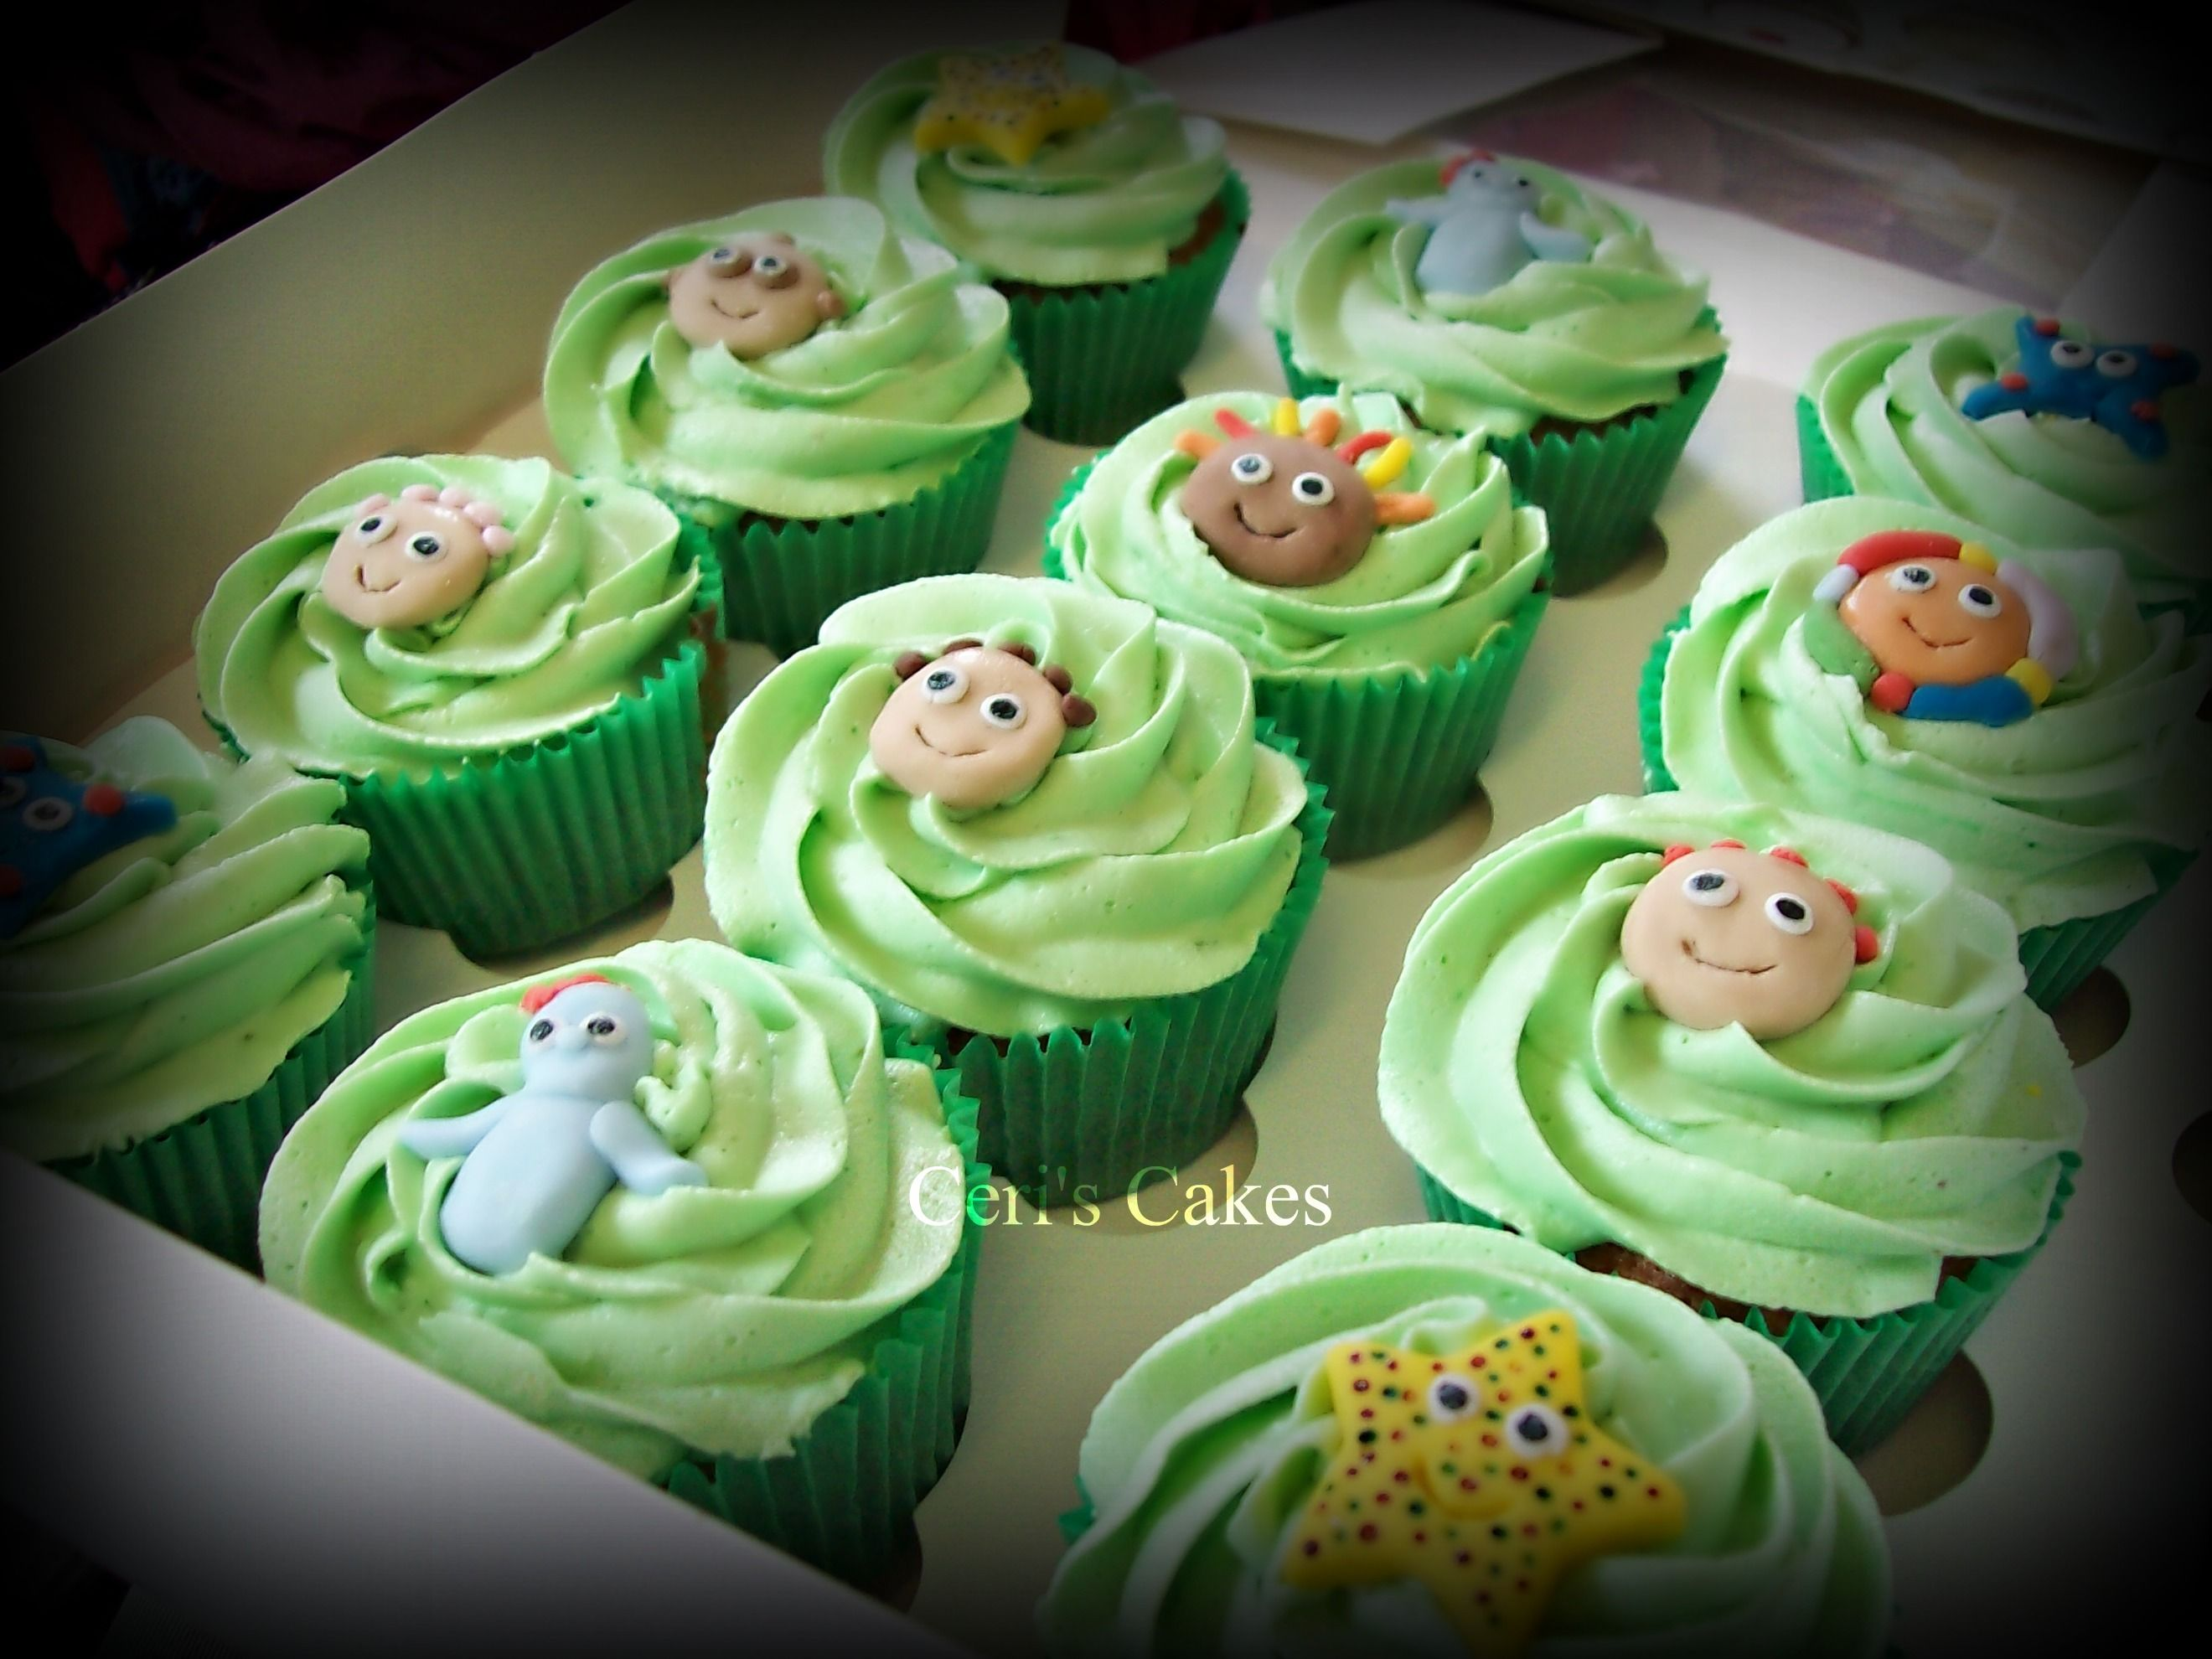 In the night garden cupcakes. I like the light green icing ...